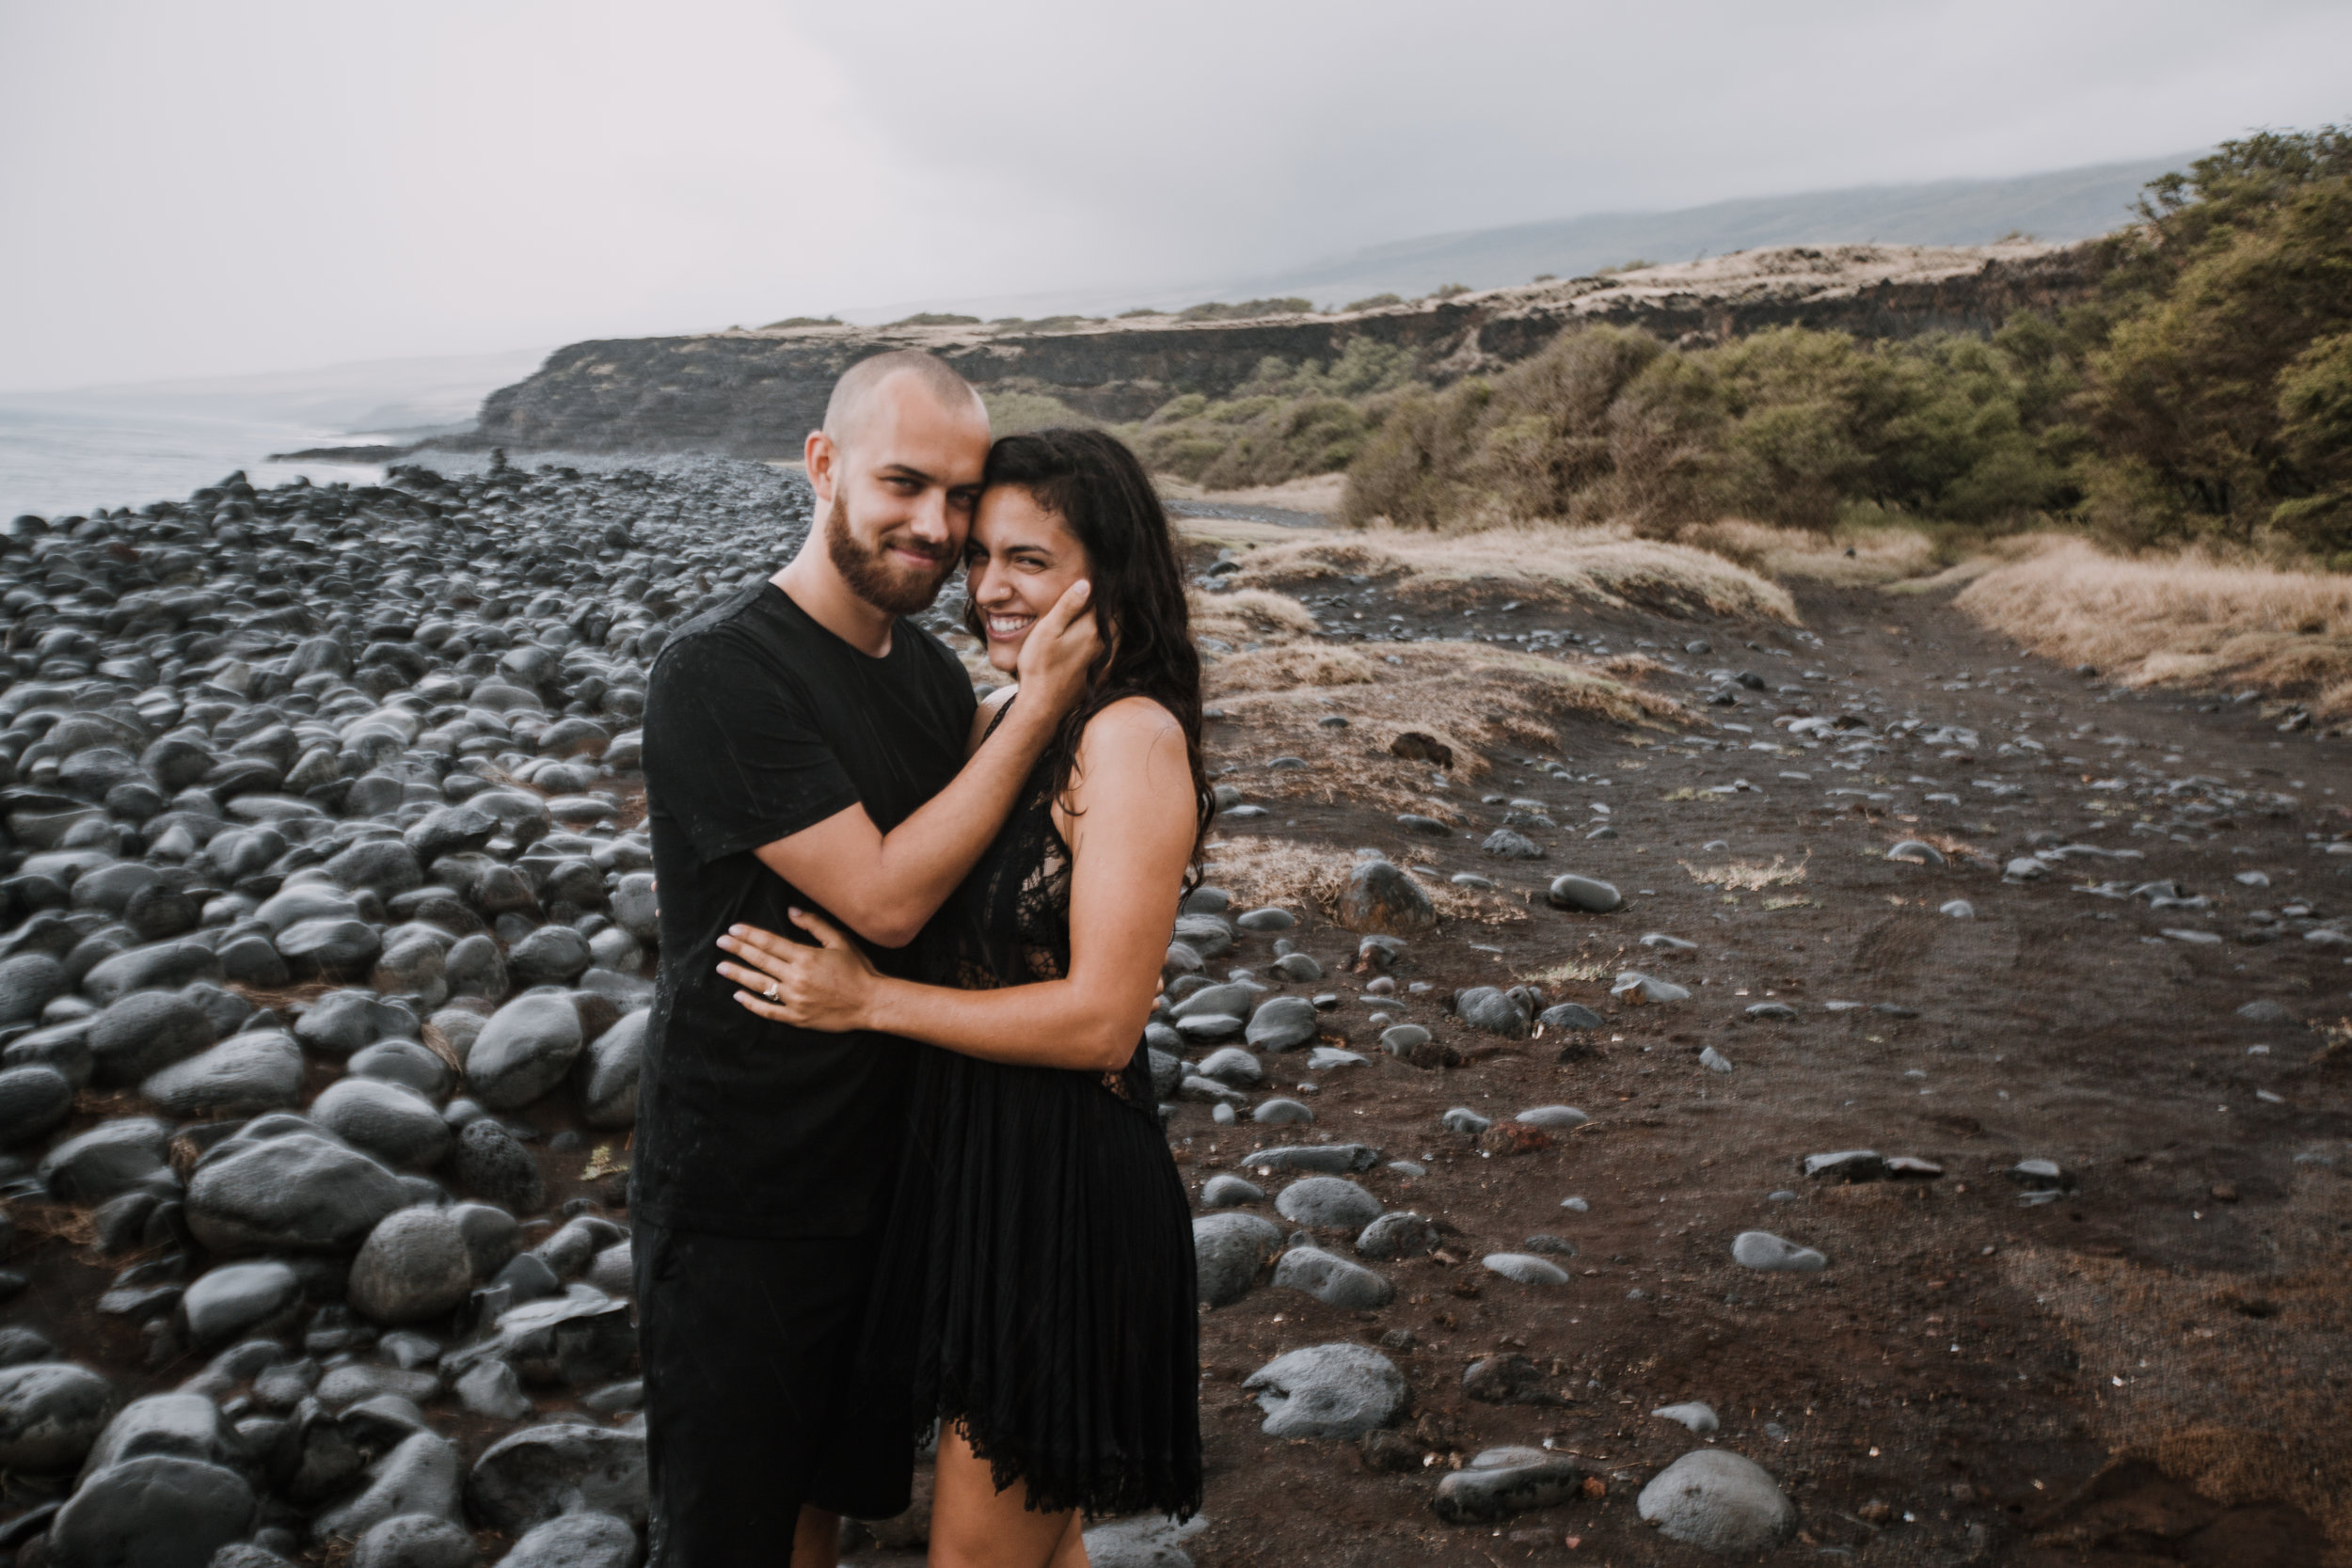 couple on kaupo beach, hawaiian volcanic eruption, lava rock, haleakala national park, hawaii wedding photographer, hawaii elopement photographer, maui wedding, maui engagements, maui elopement